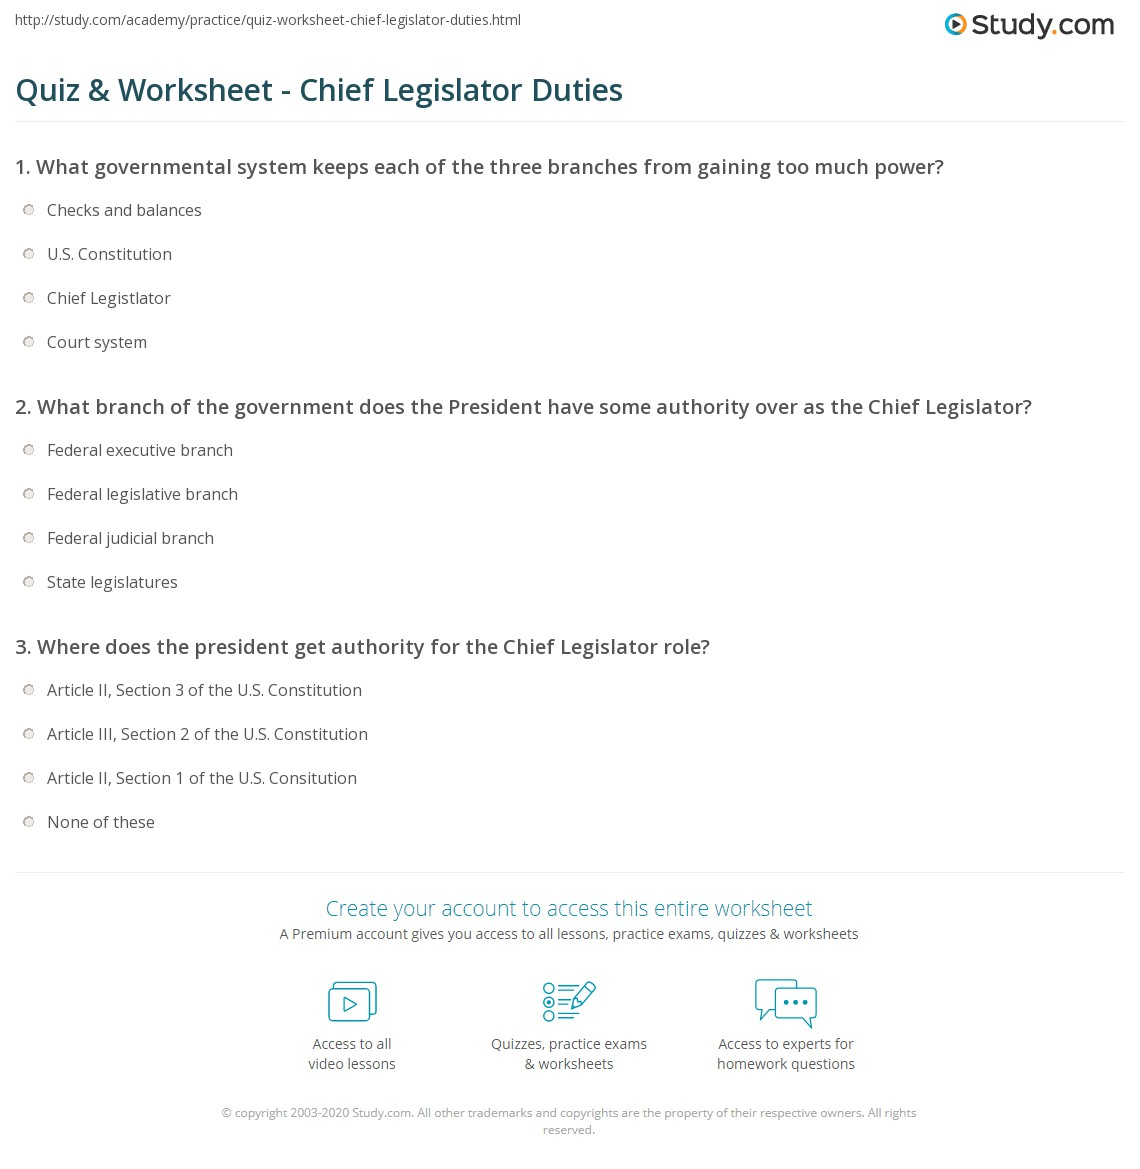 Roles Of The President Worksheet Free Worksheets Library – Roles of the President Worksheet